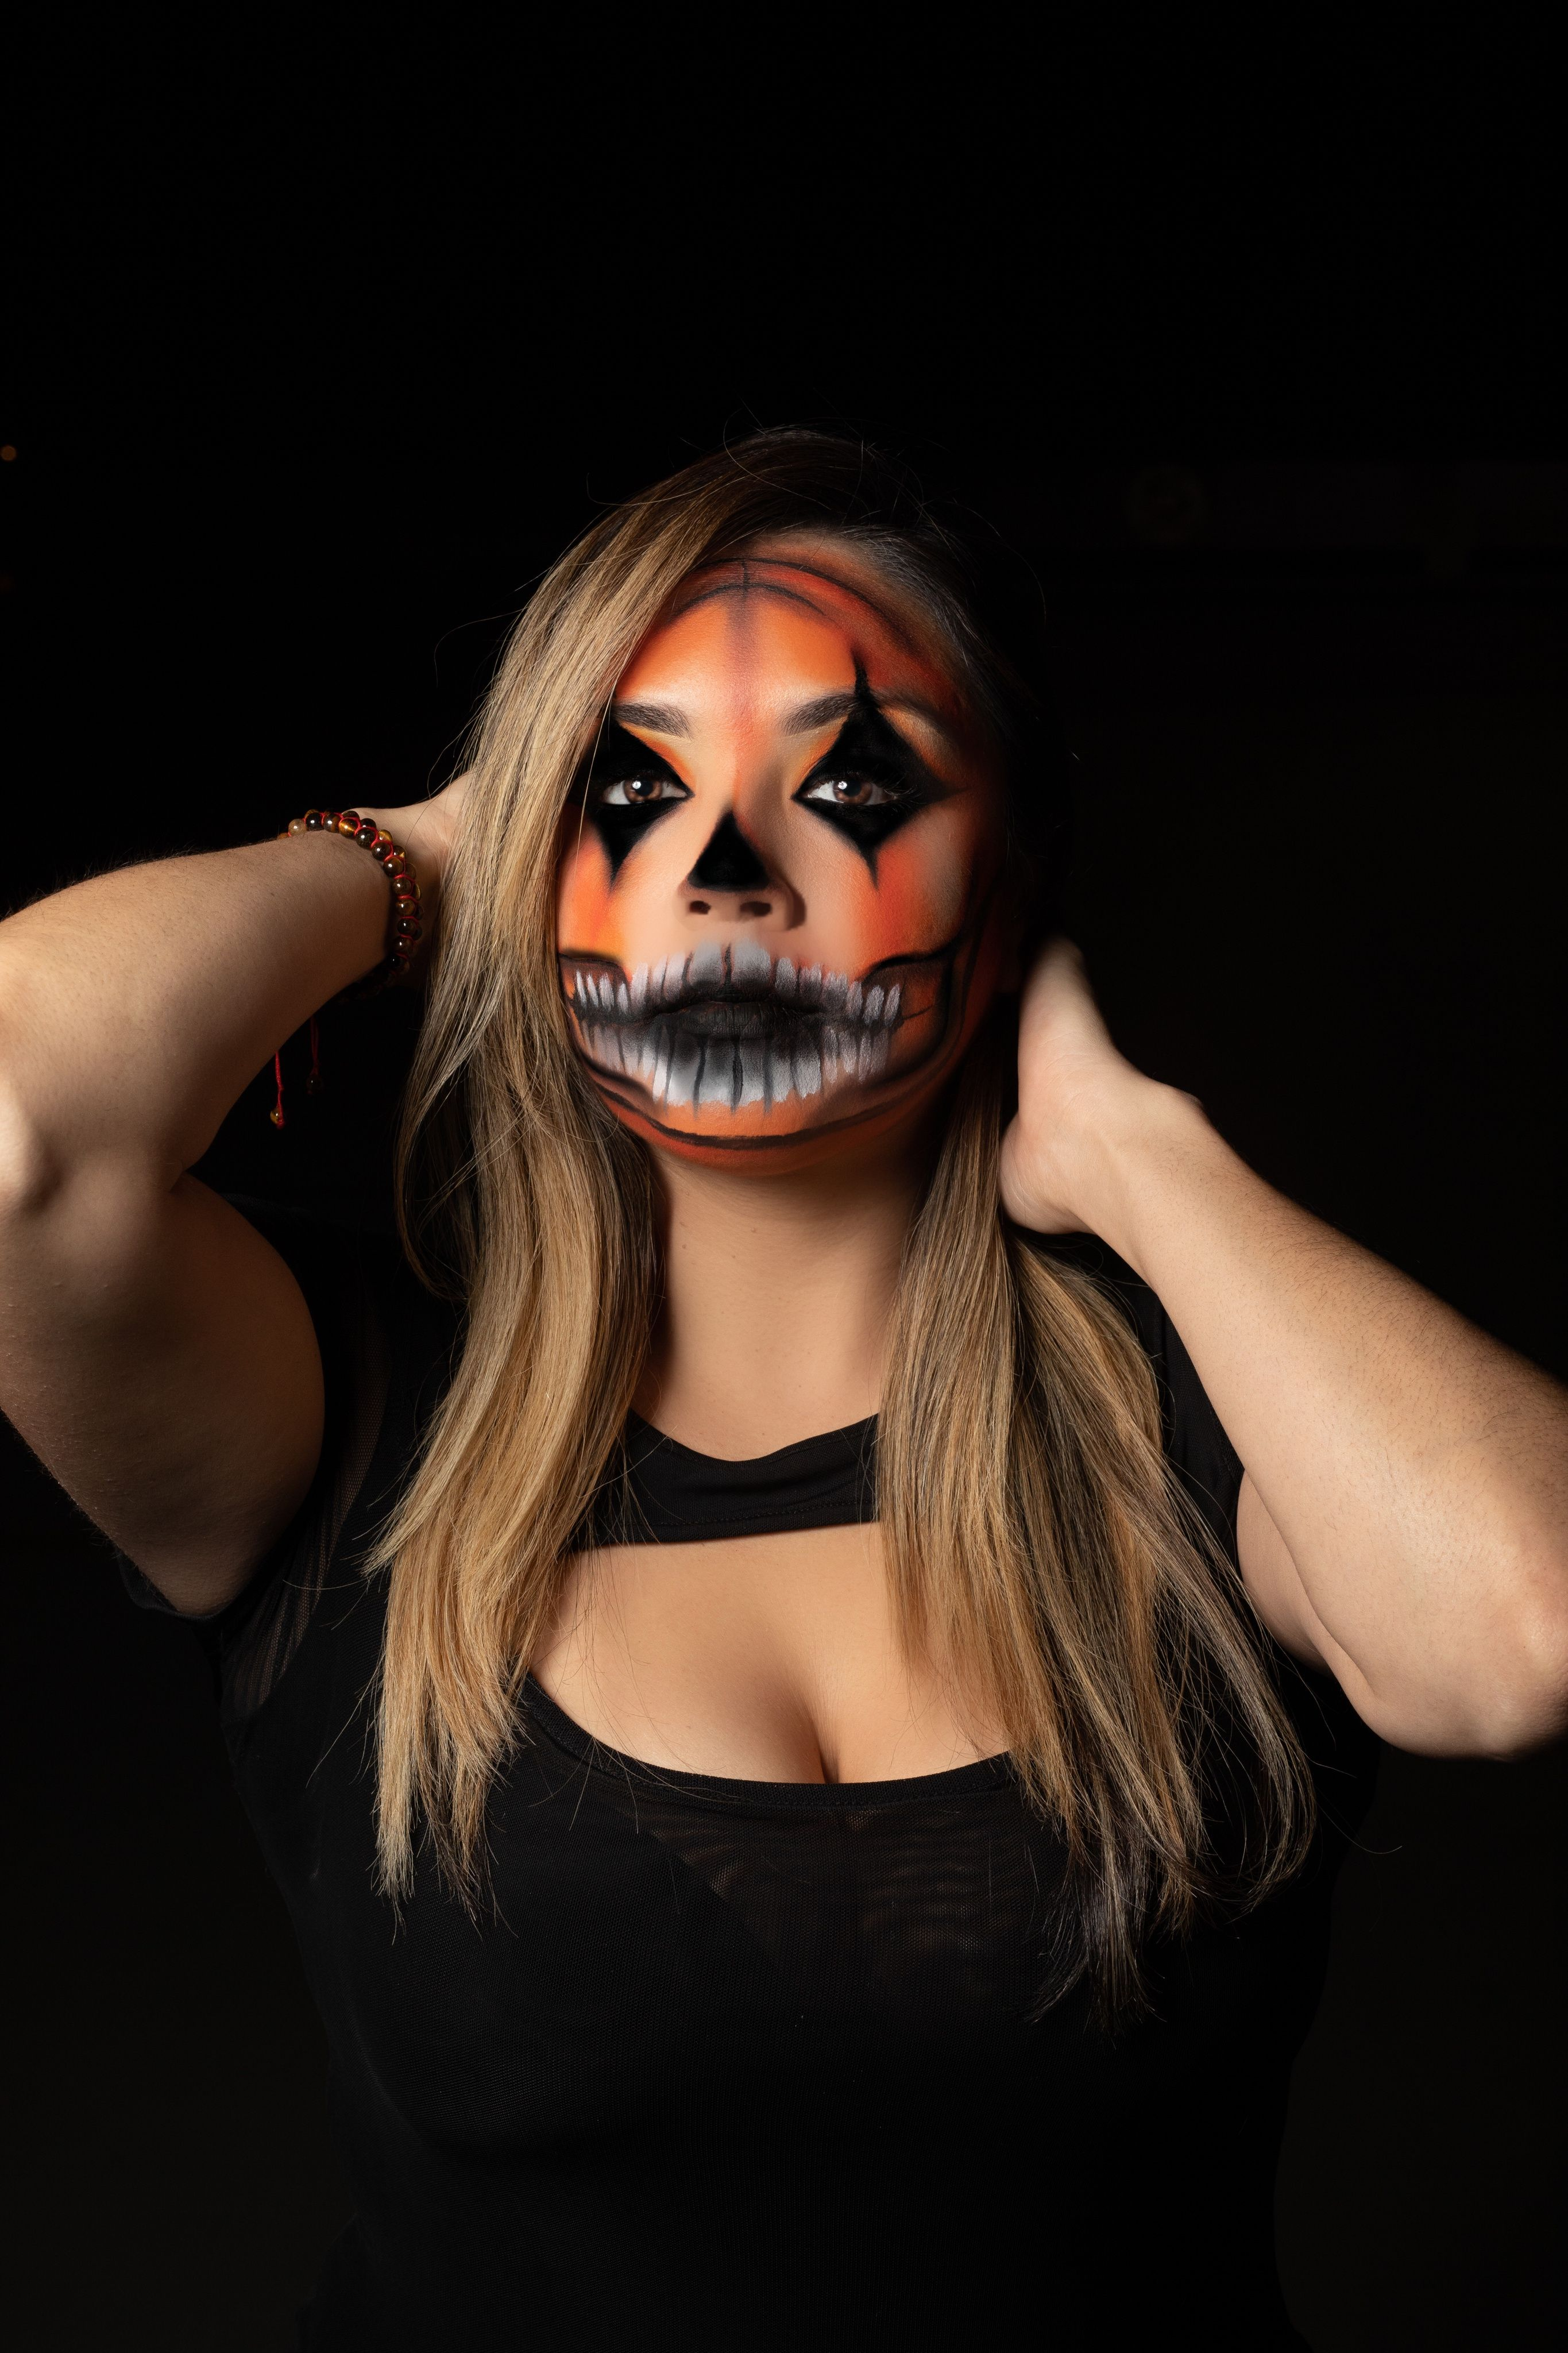 Pumpkin skull makeup created by me. If you guys try this